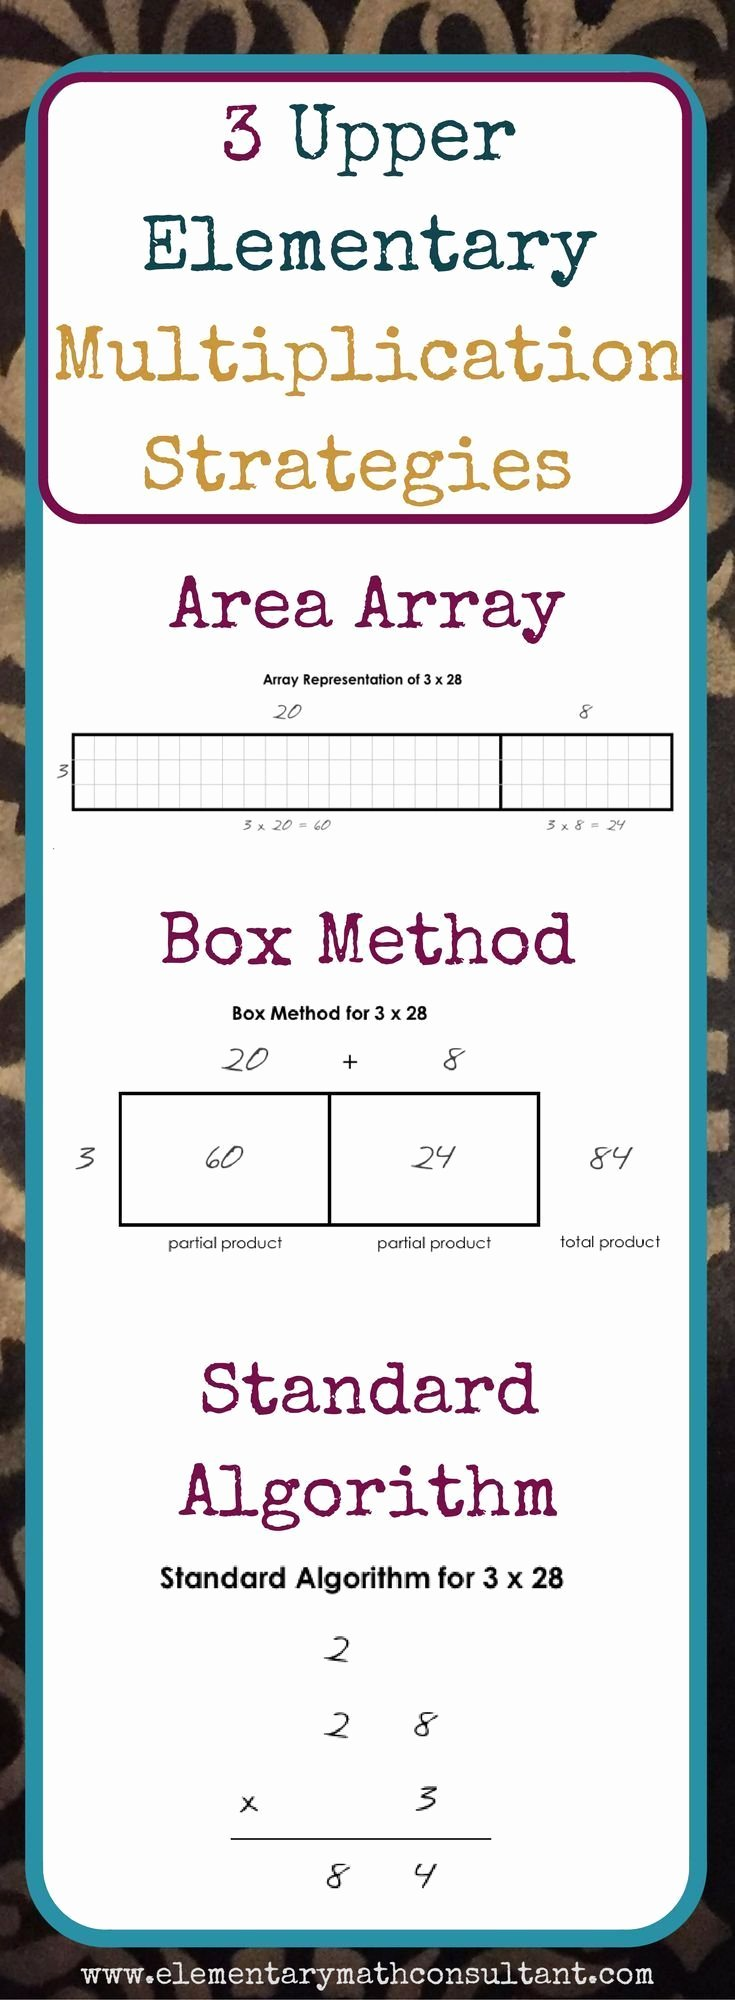 Box Multiplication Worksheets Best Of Number Multiplication Worksheets Teaching with the Box